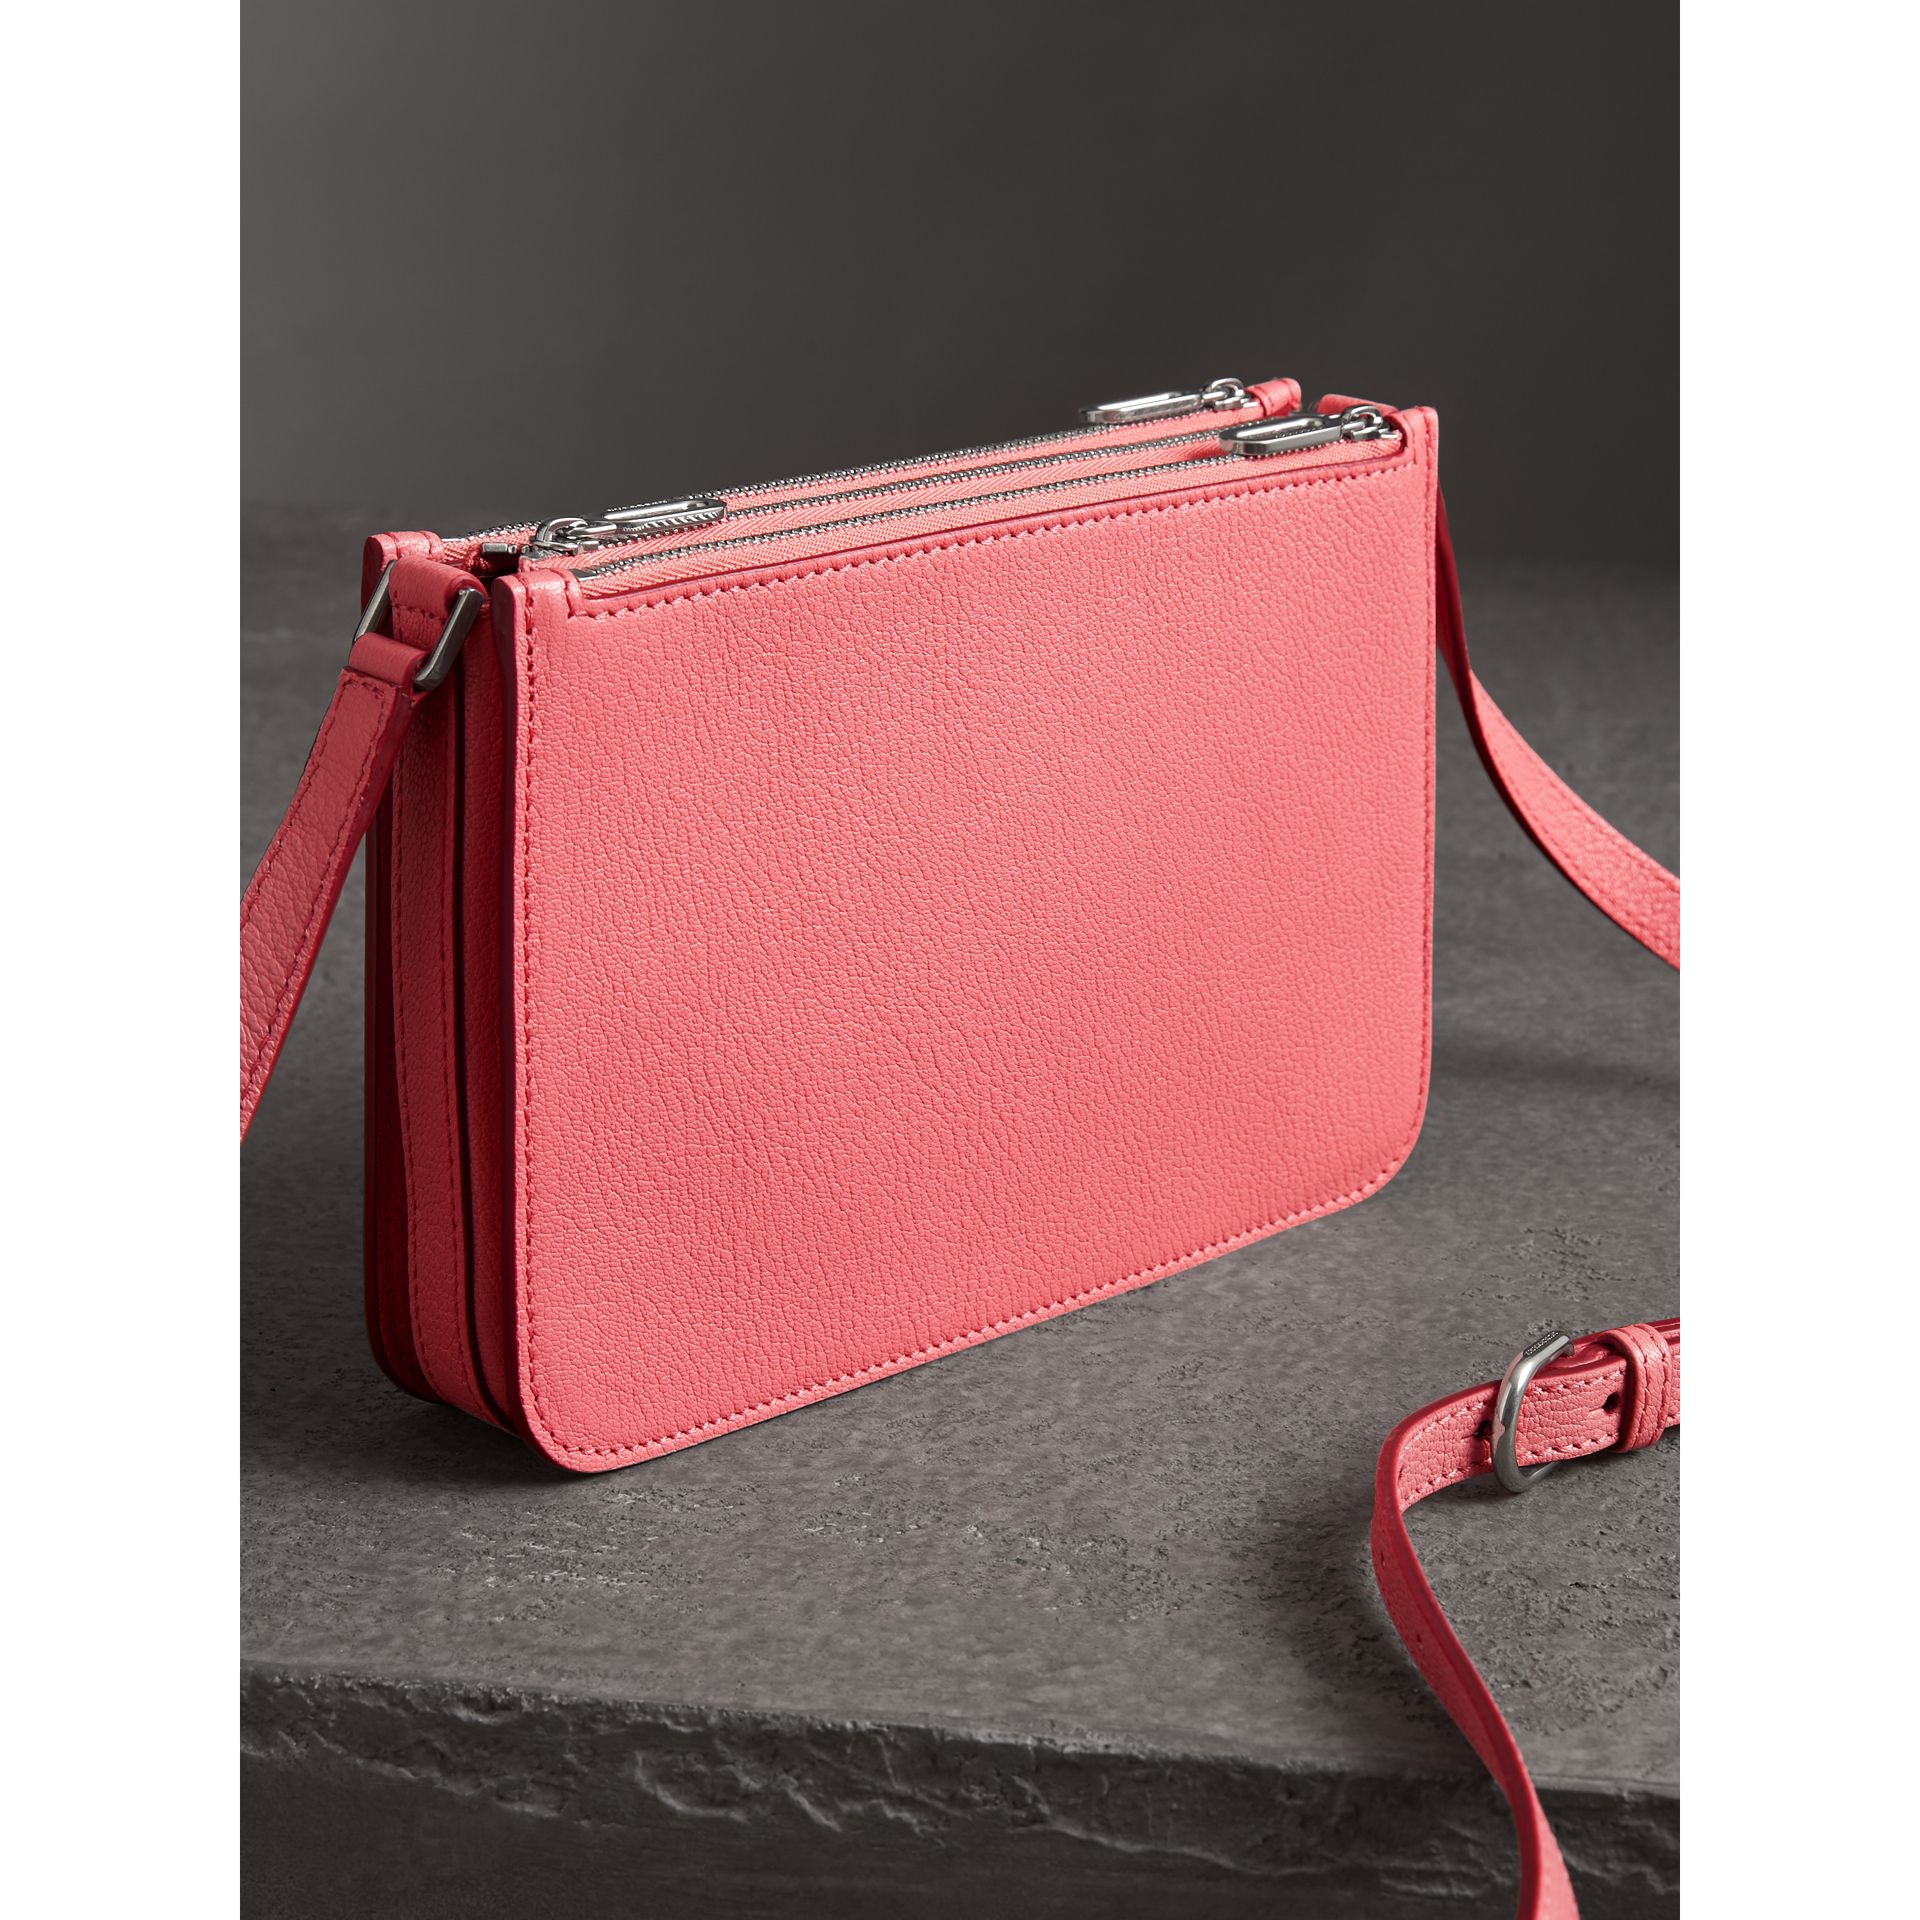 Triple Zip Grainy Leather Crossbody Bag in Bright Coral Pink - Women | Burberry Australia - gallery image 2